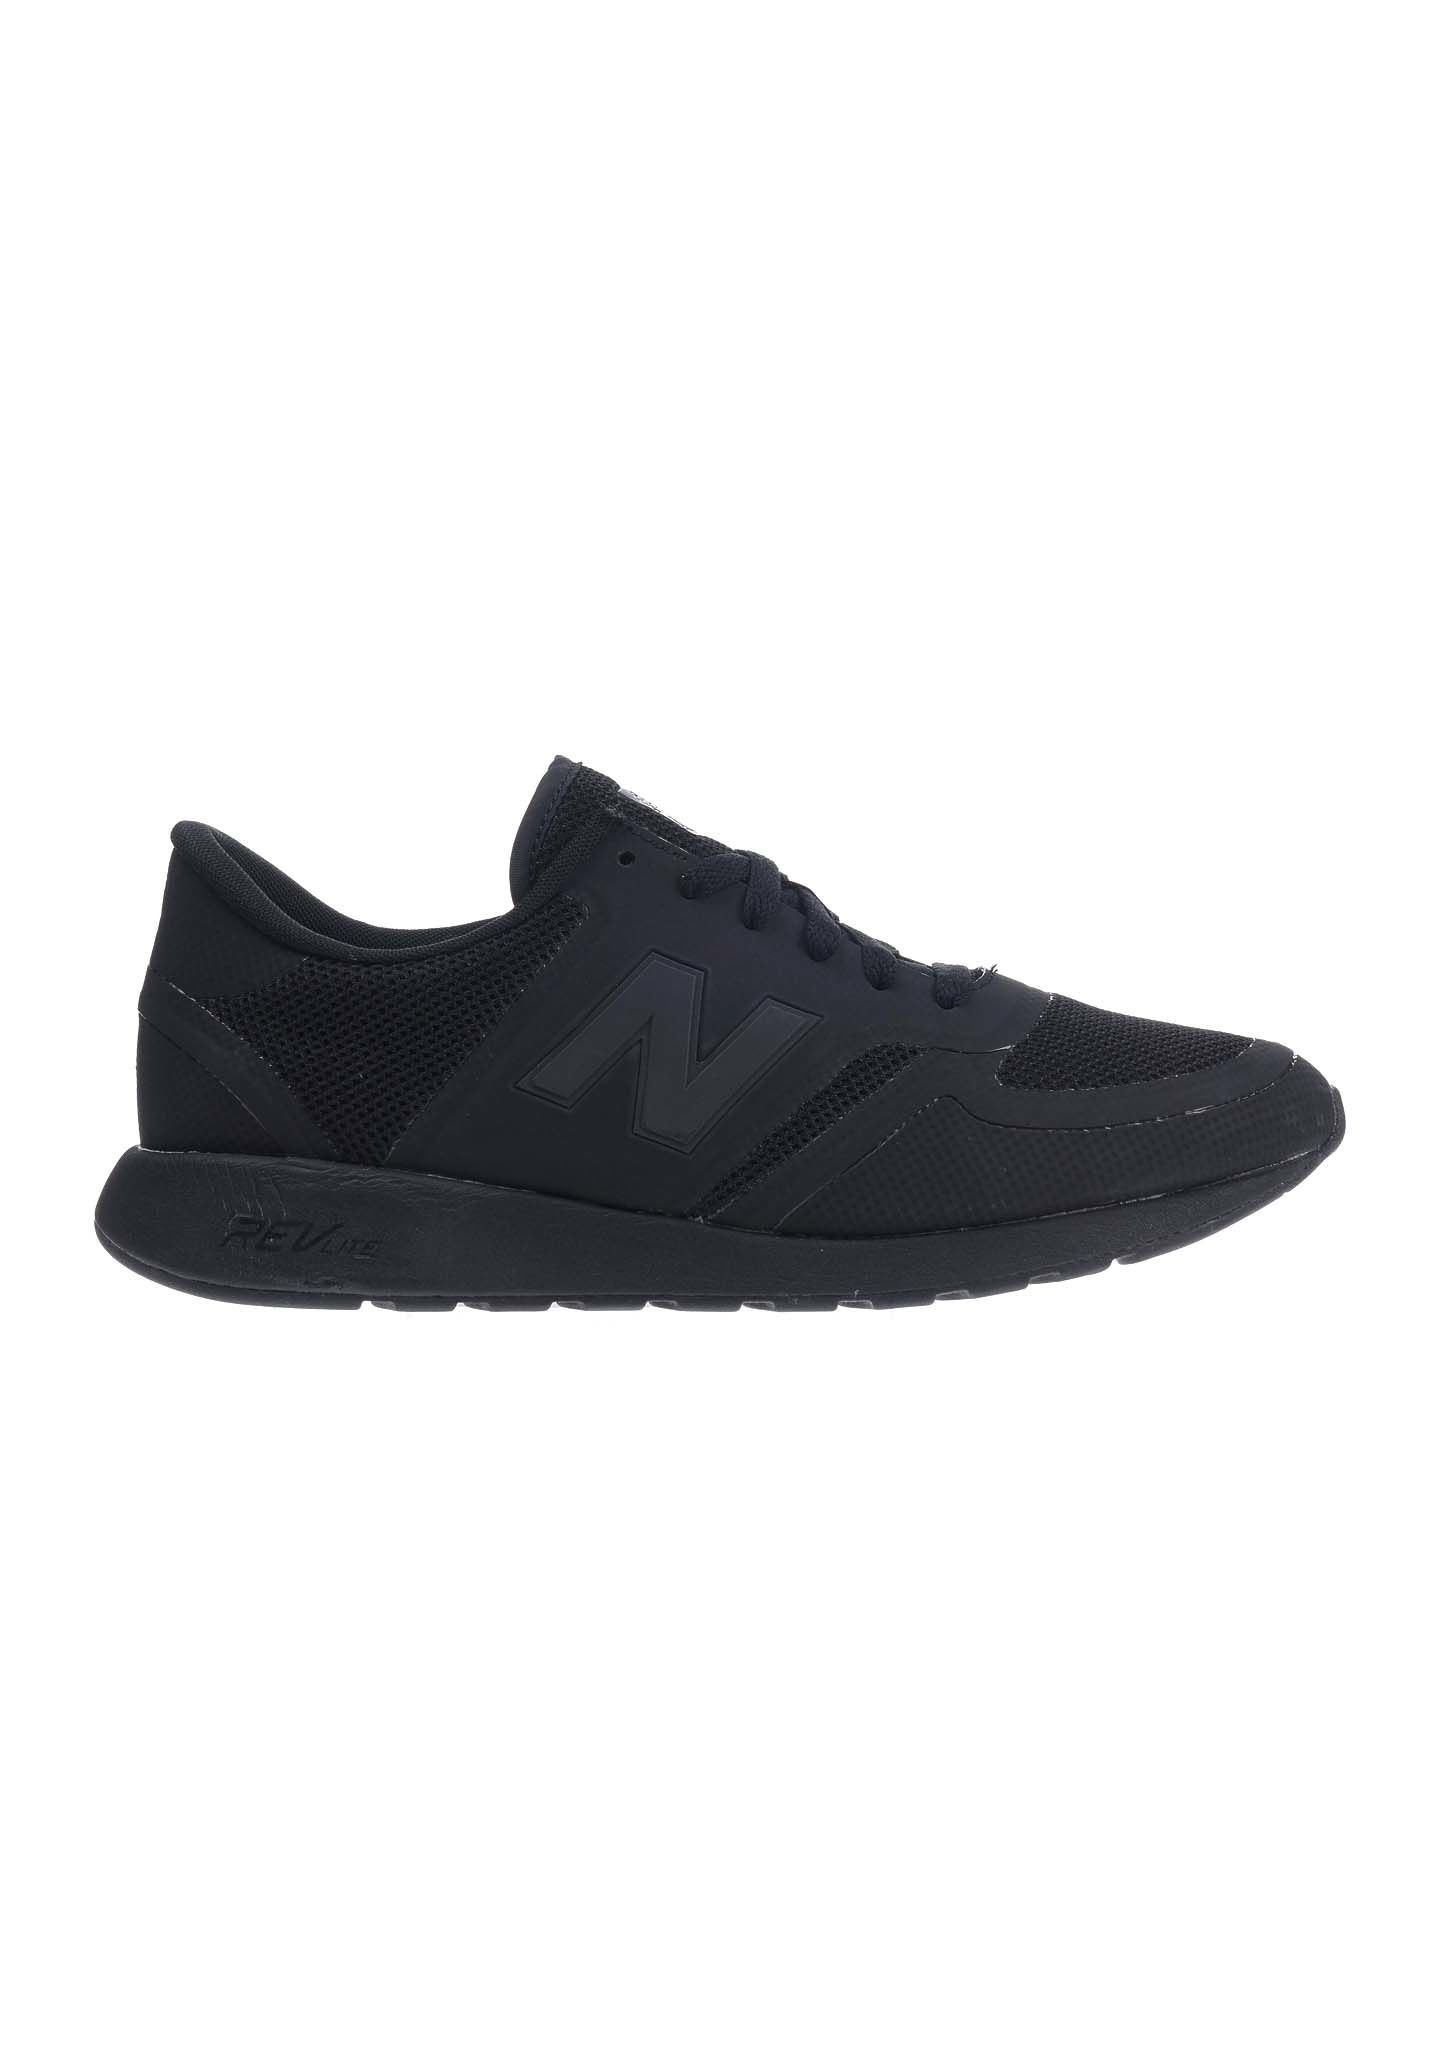 NEW BALANCE MRL420 D - Sneakers for Men - Black